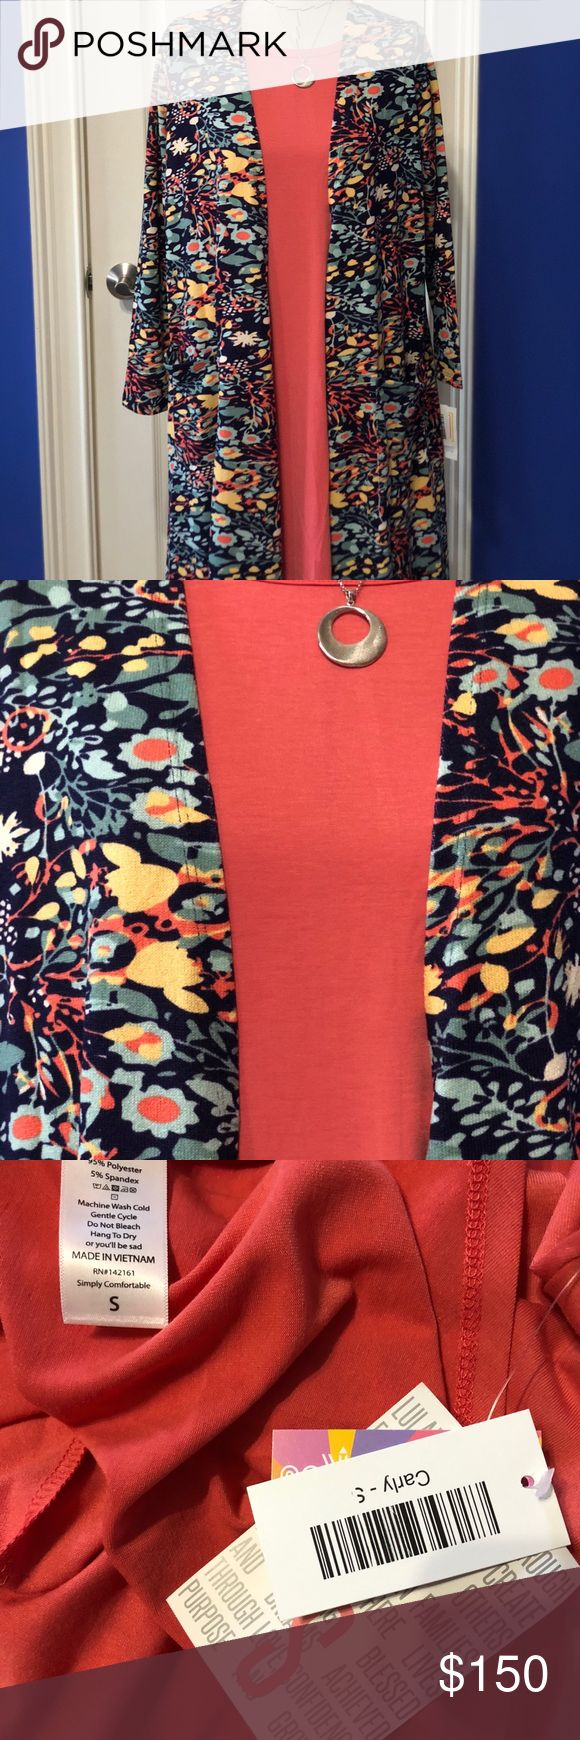 Another perfect pairing for LuLaRoe! BNWT S LEGGING MATERIAL ( meaning super soft against your skin ) CARLY / BNWT M SARAH LuLaRoe Dresses